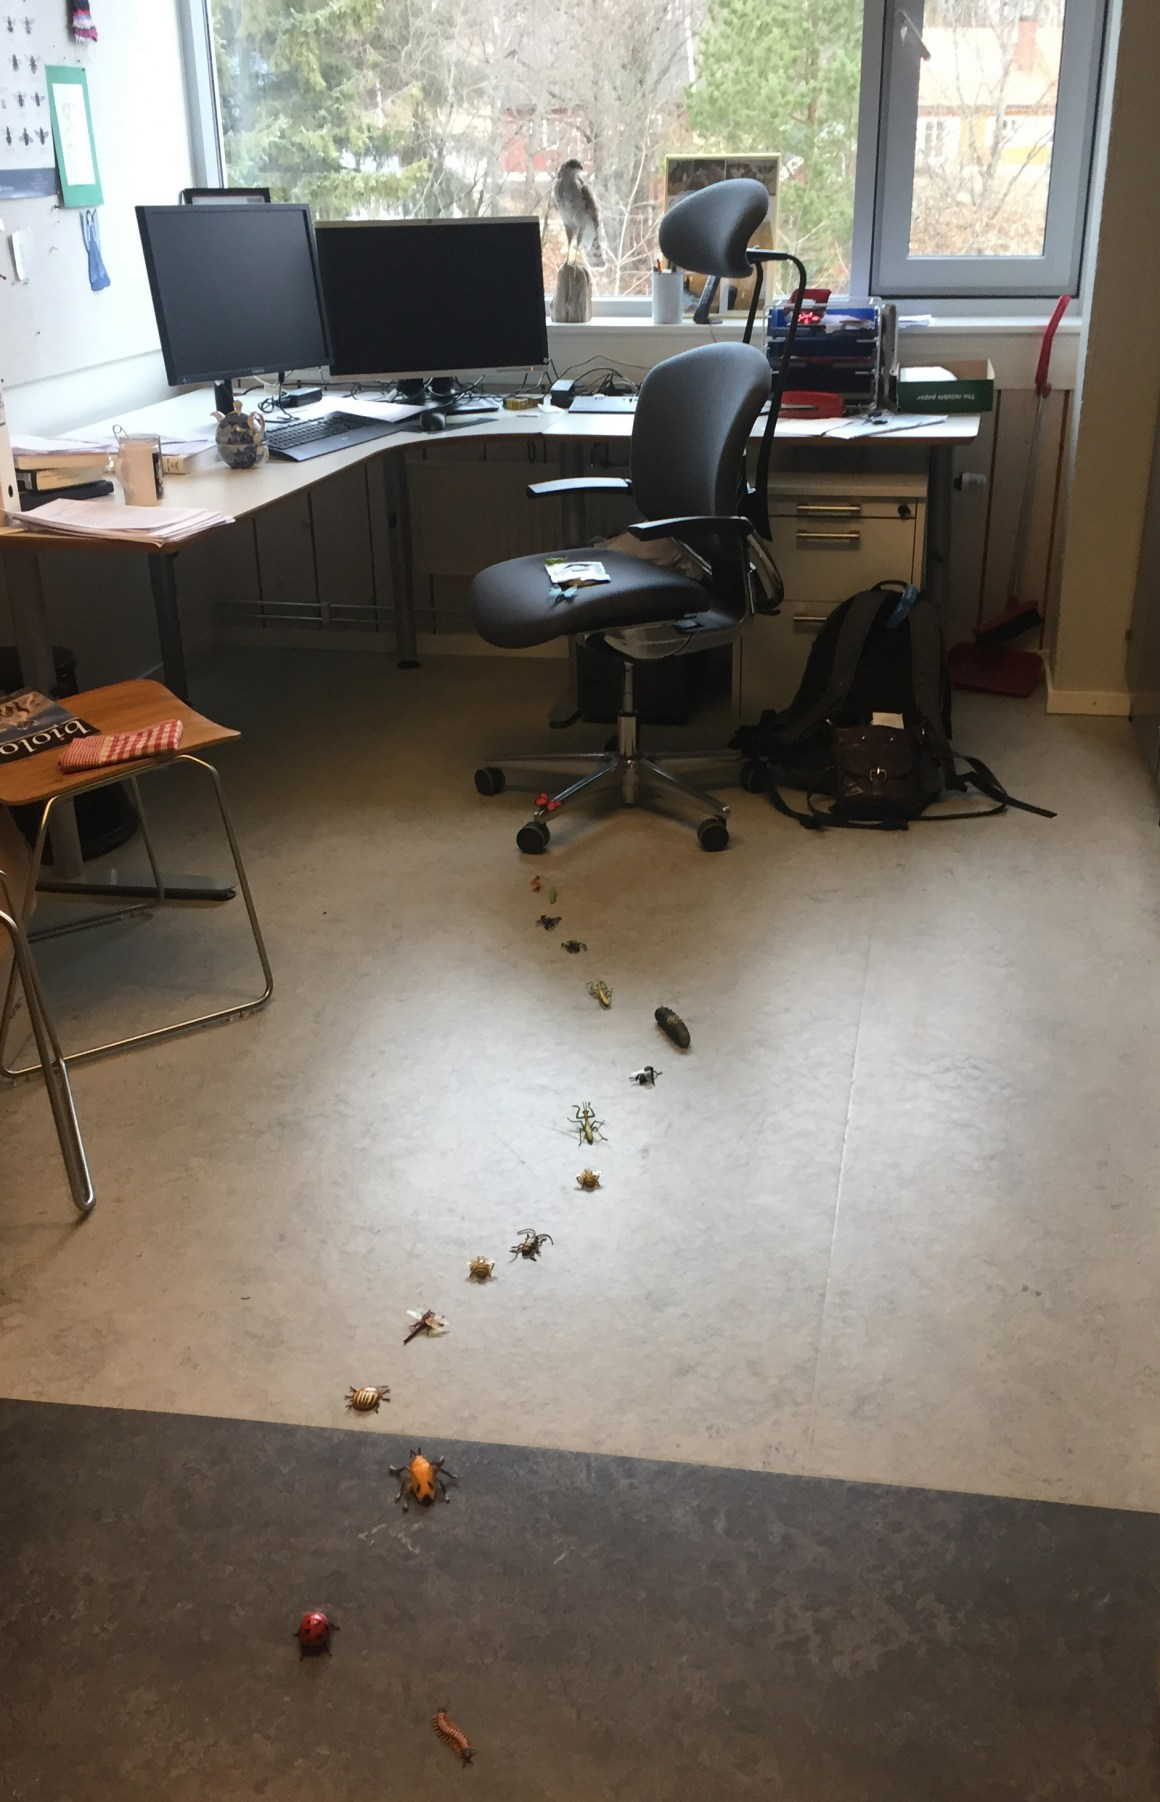 Welcome to work: A path of bugs